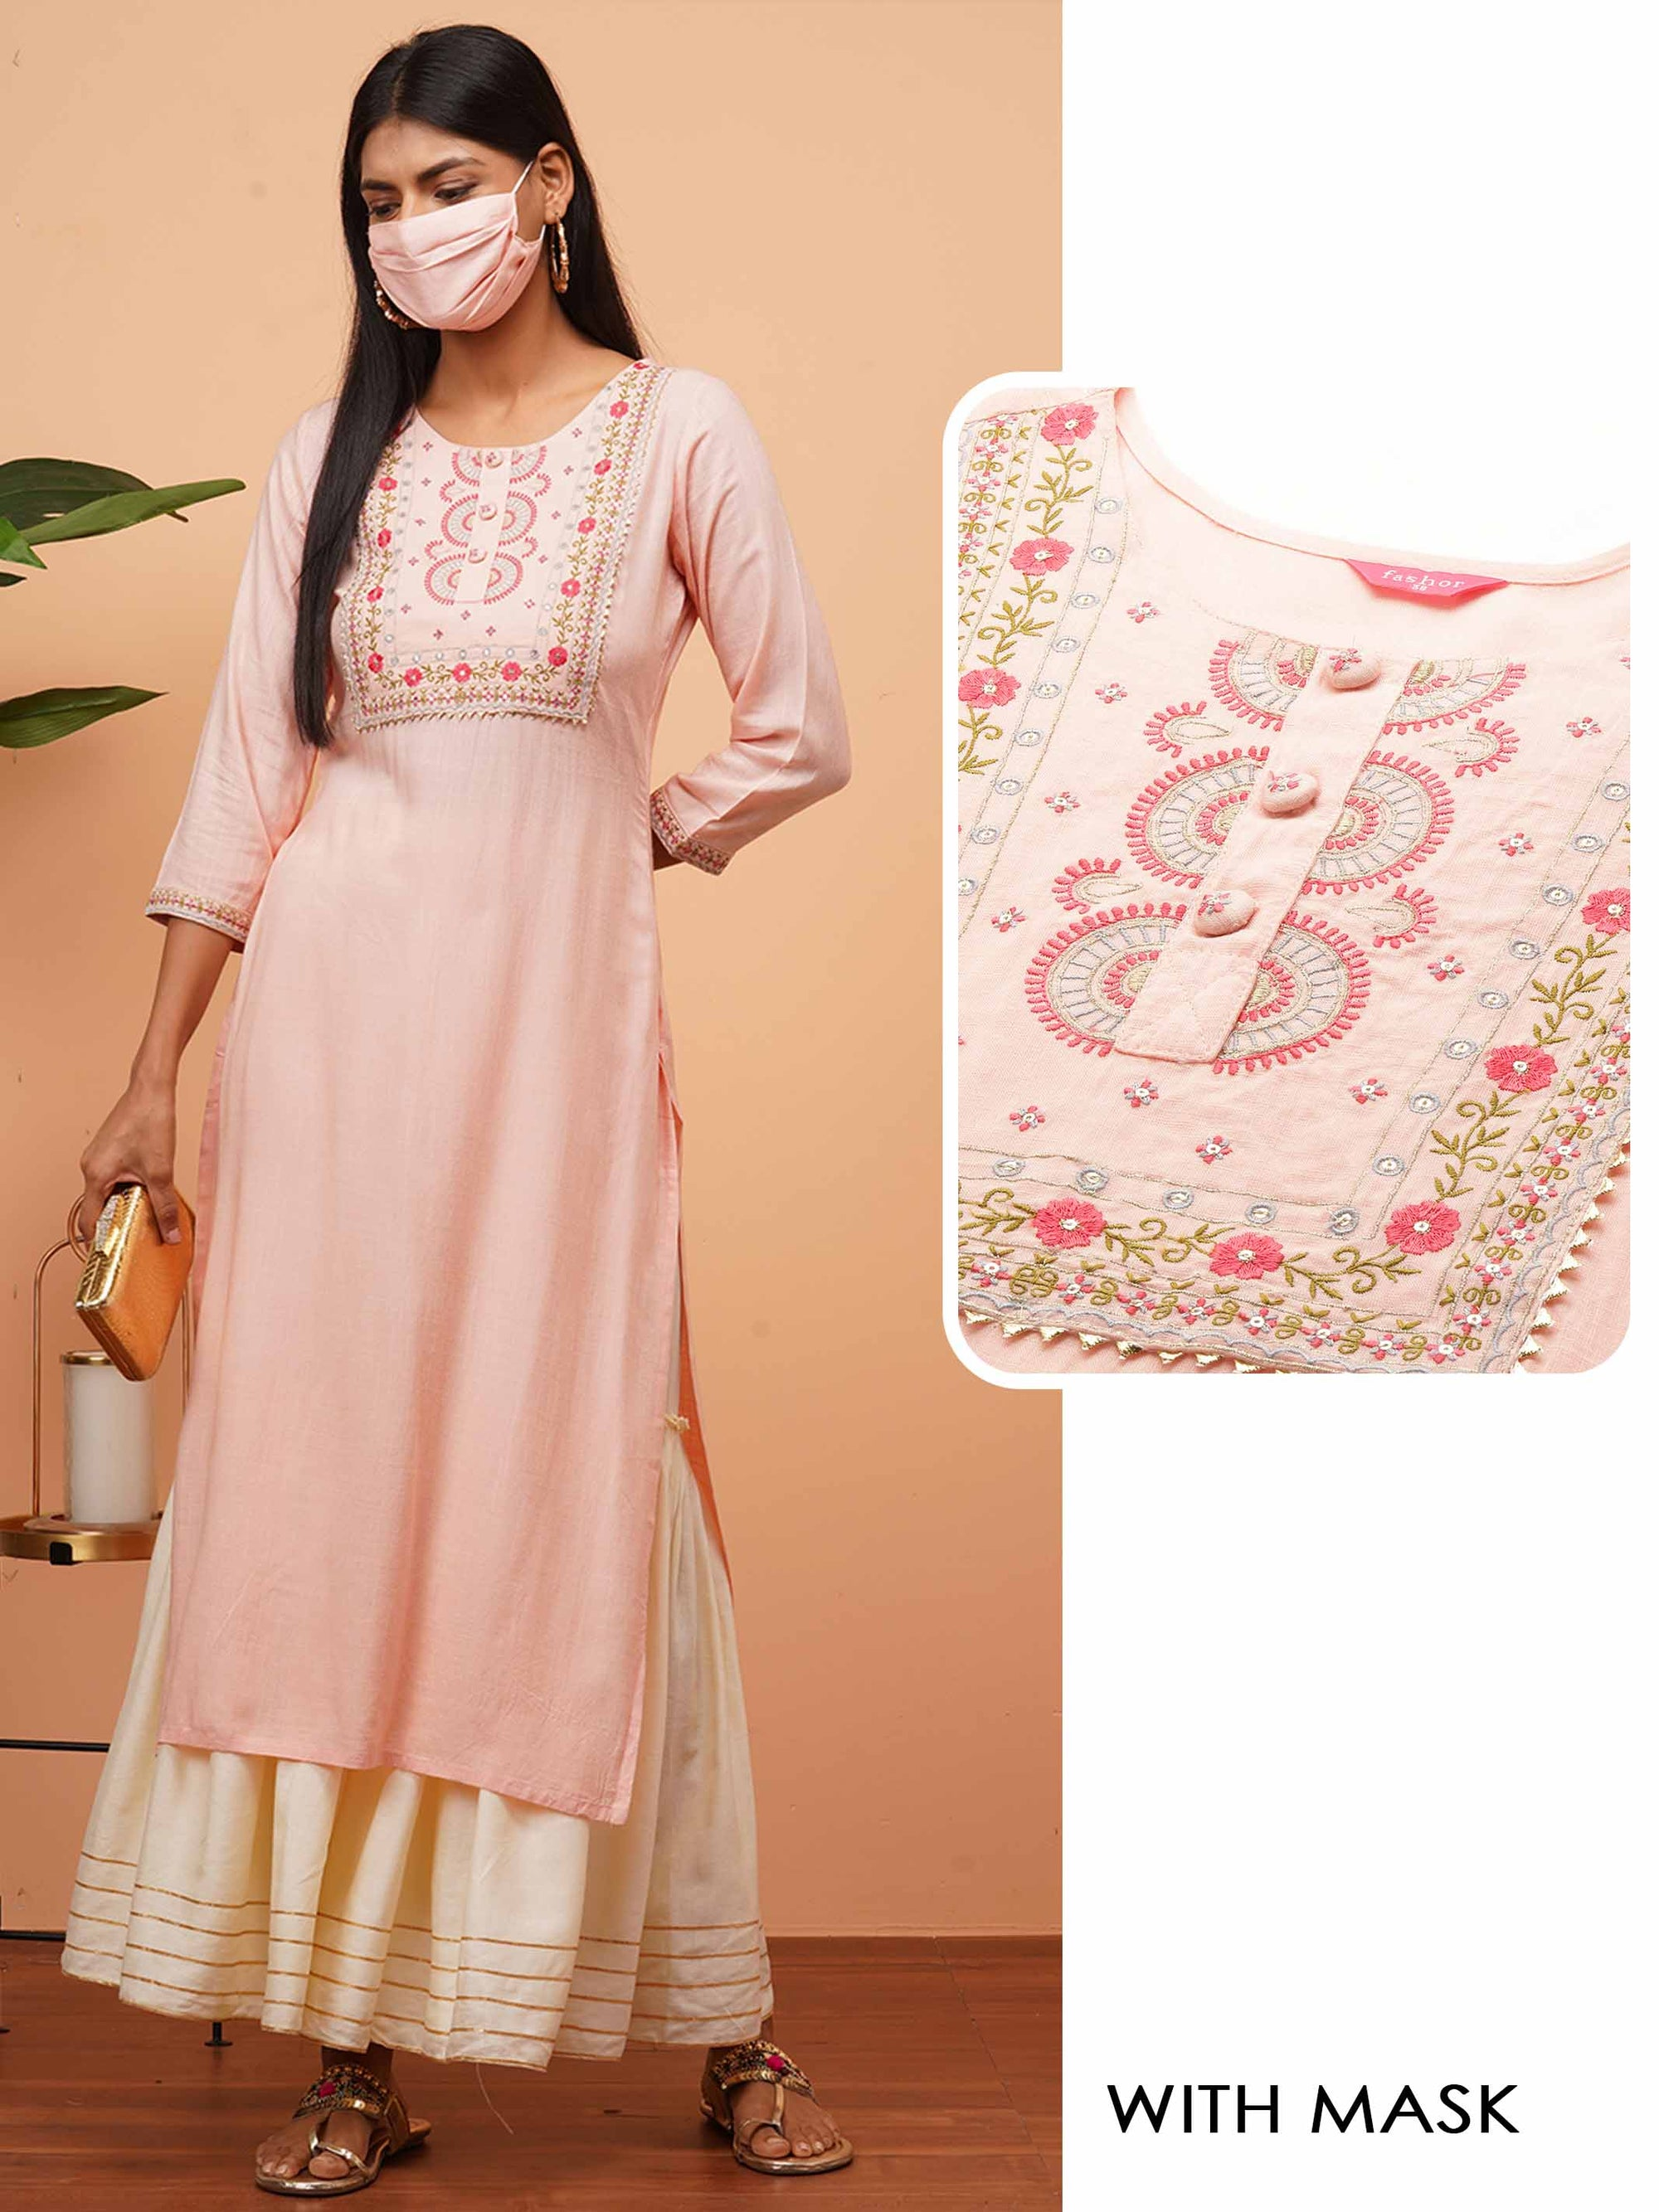 Chic Floral Mix Embroidered Straight Kurta with 2-Ply Mask - Peach